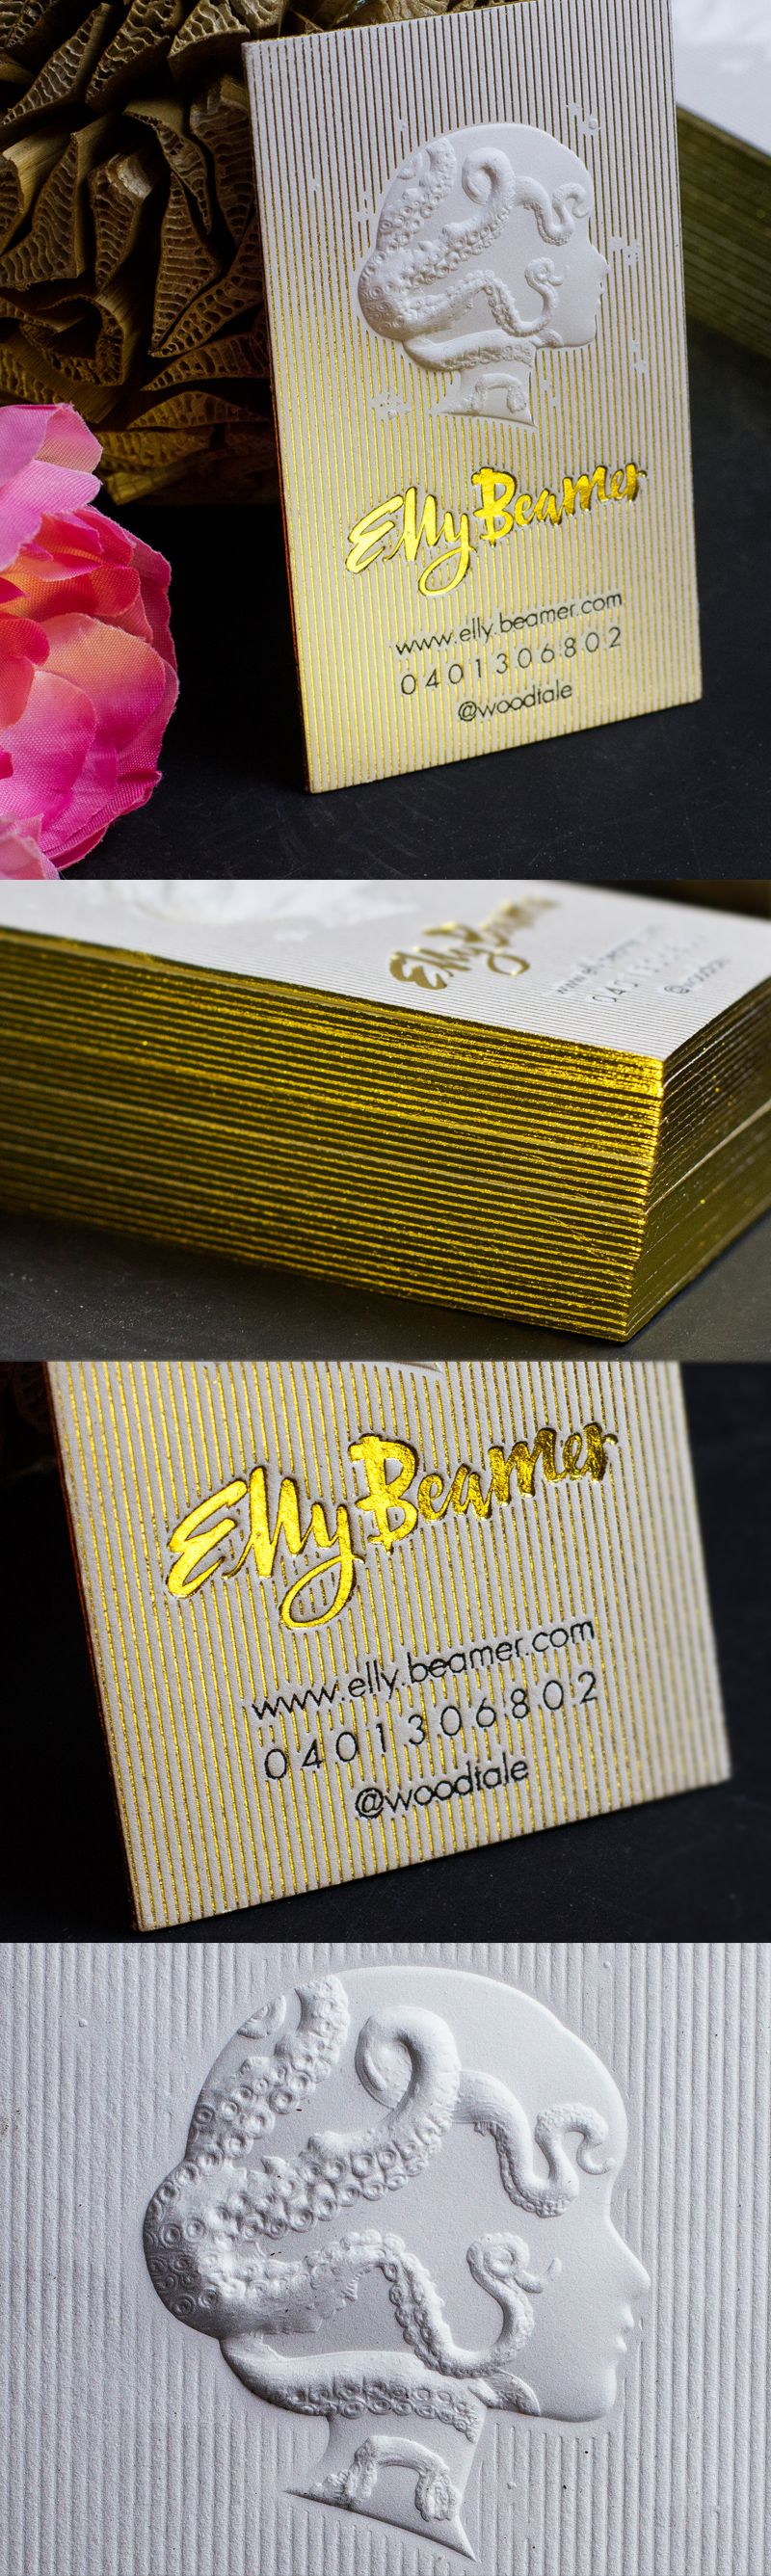 stunning 3d embossed business card with gold foil and letterpress